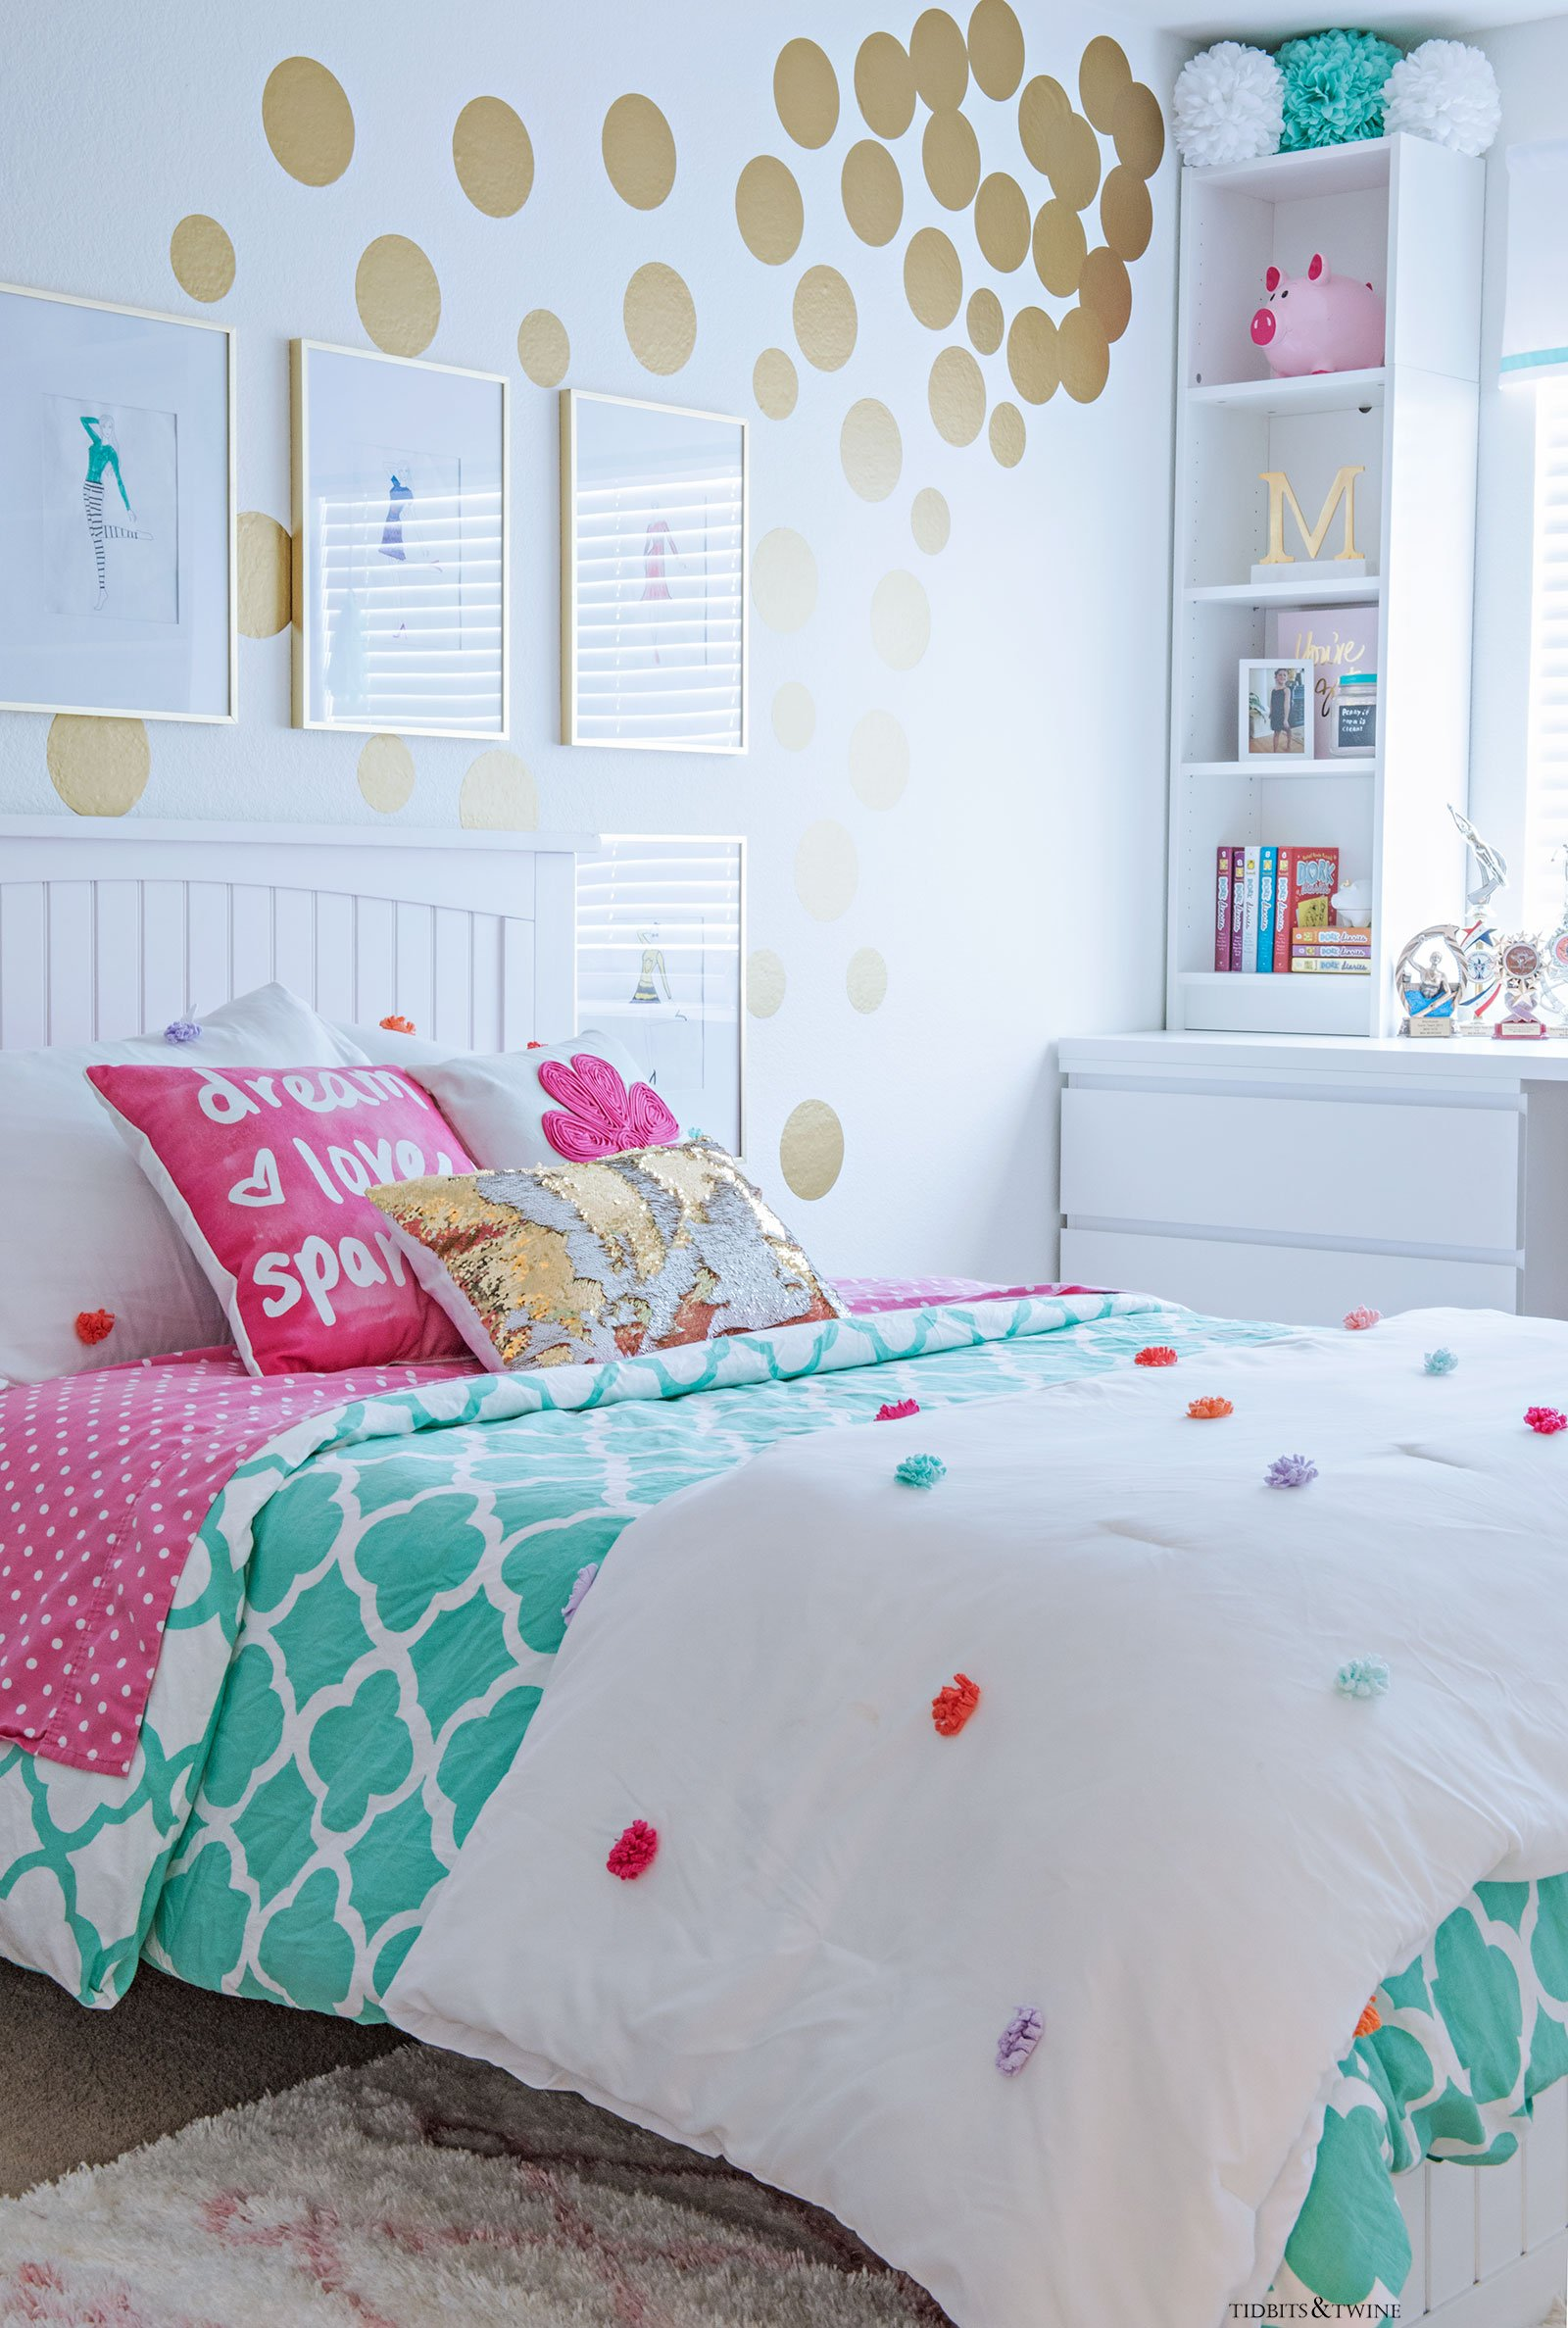 Tween girl 39 s bedroom makeover reveal tidbits twine for Bedroom ideas for tween girl